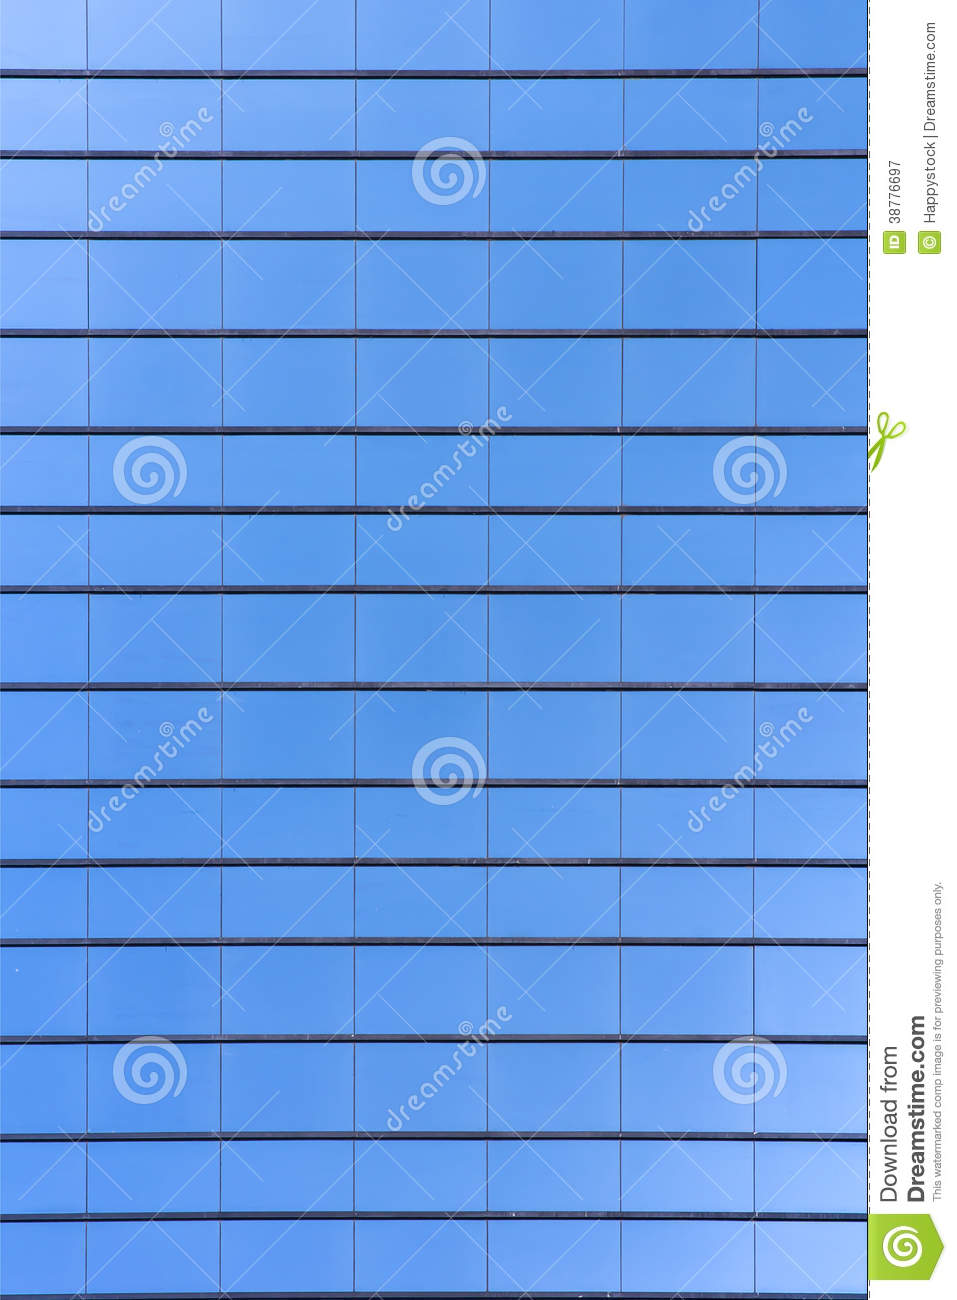 Glass building skyscraper texture pattern stock photo for Exterior glass wall texture